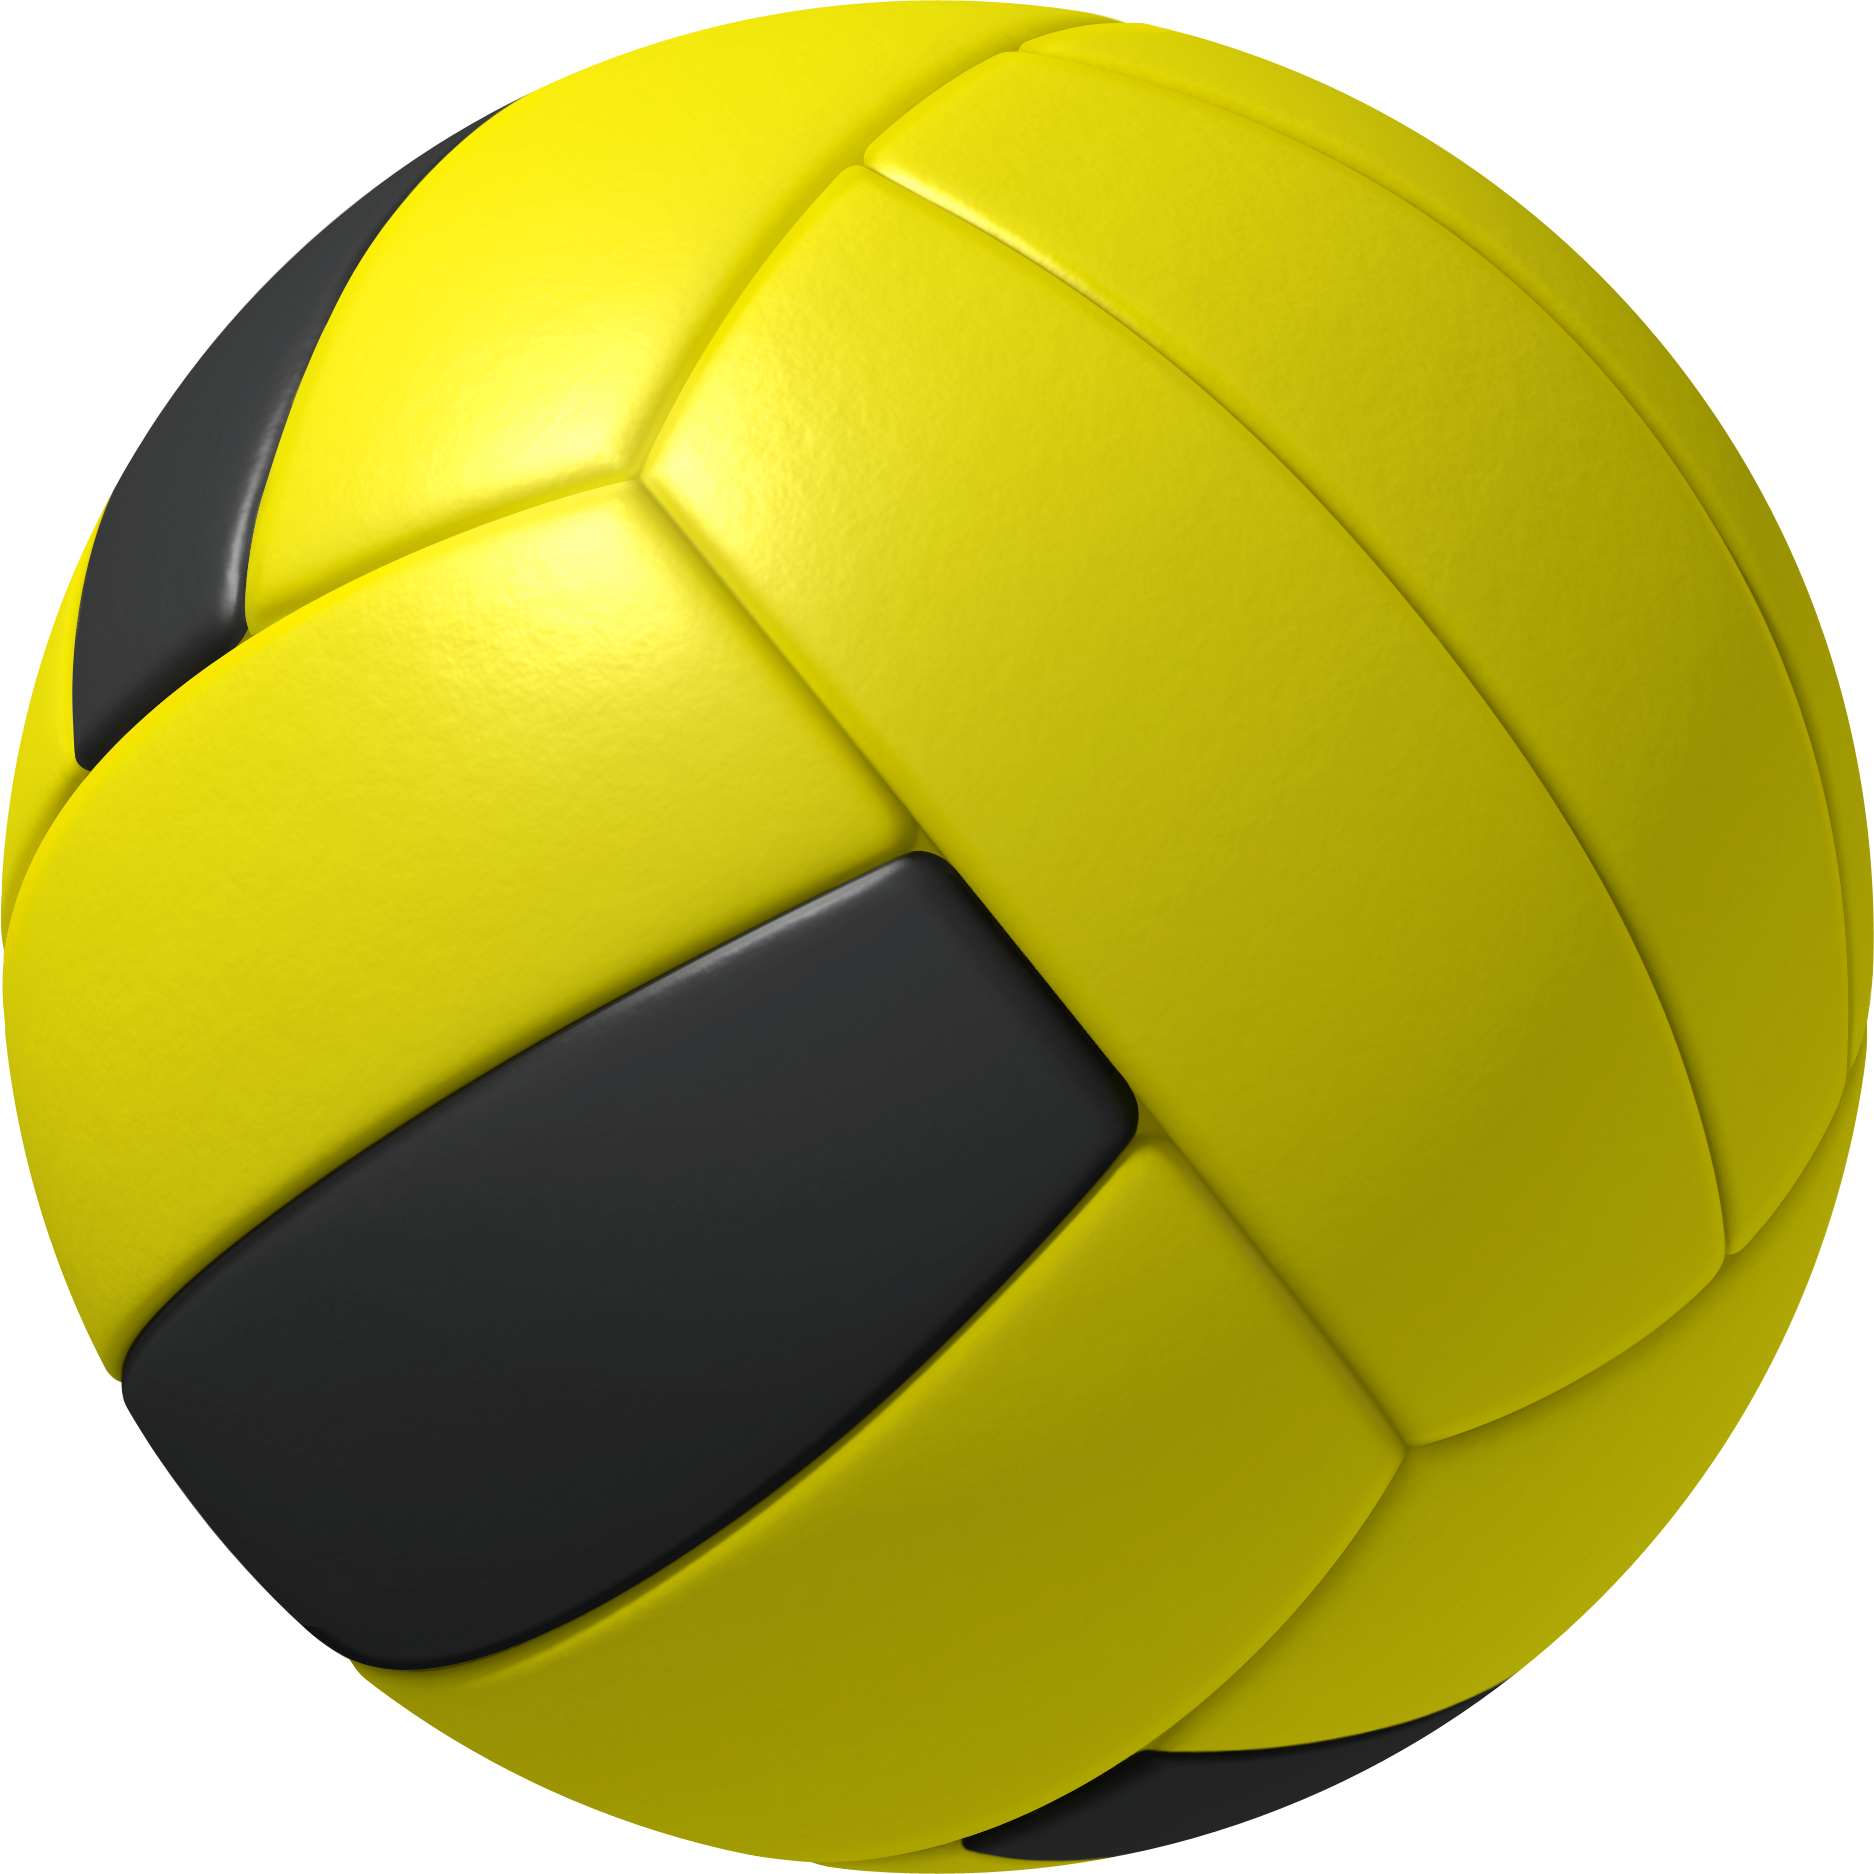 Clipart volleyball yellow. Png images free download